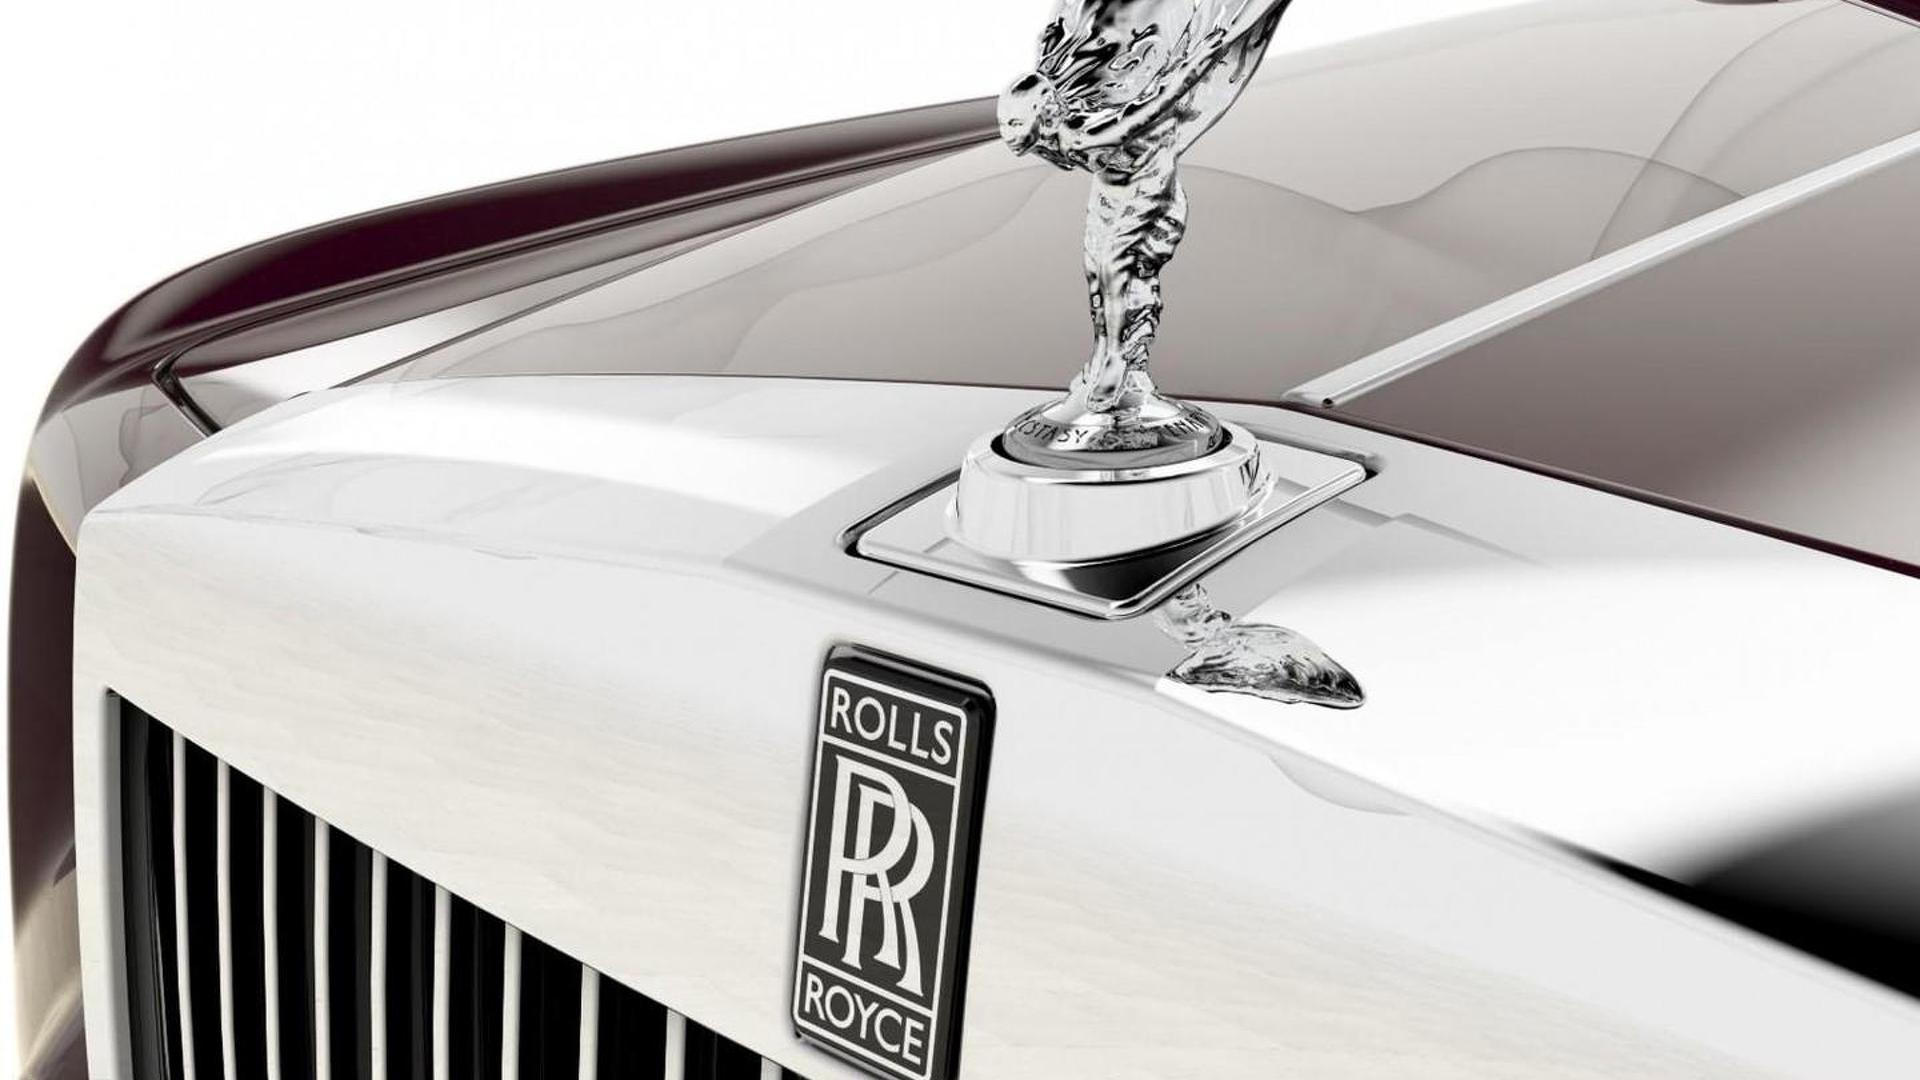 Rolls Royce announces the Phantom Spirit of Ecstasy Centenary Collection